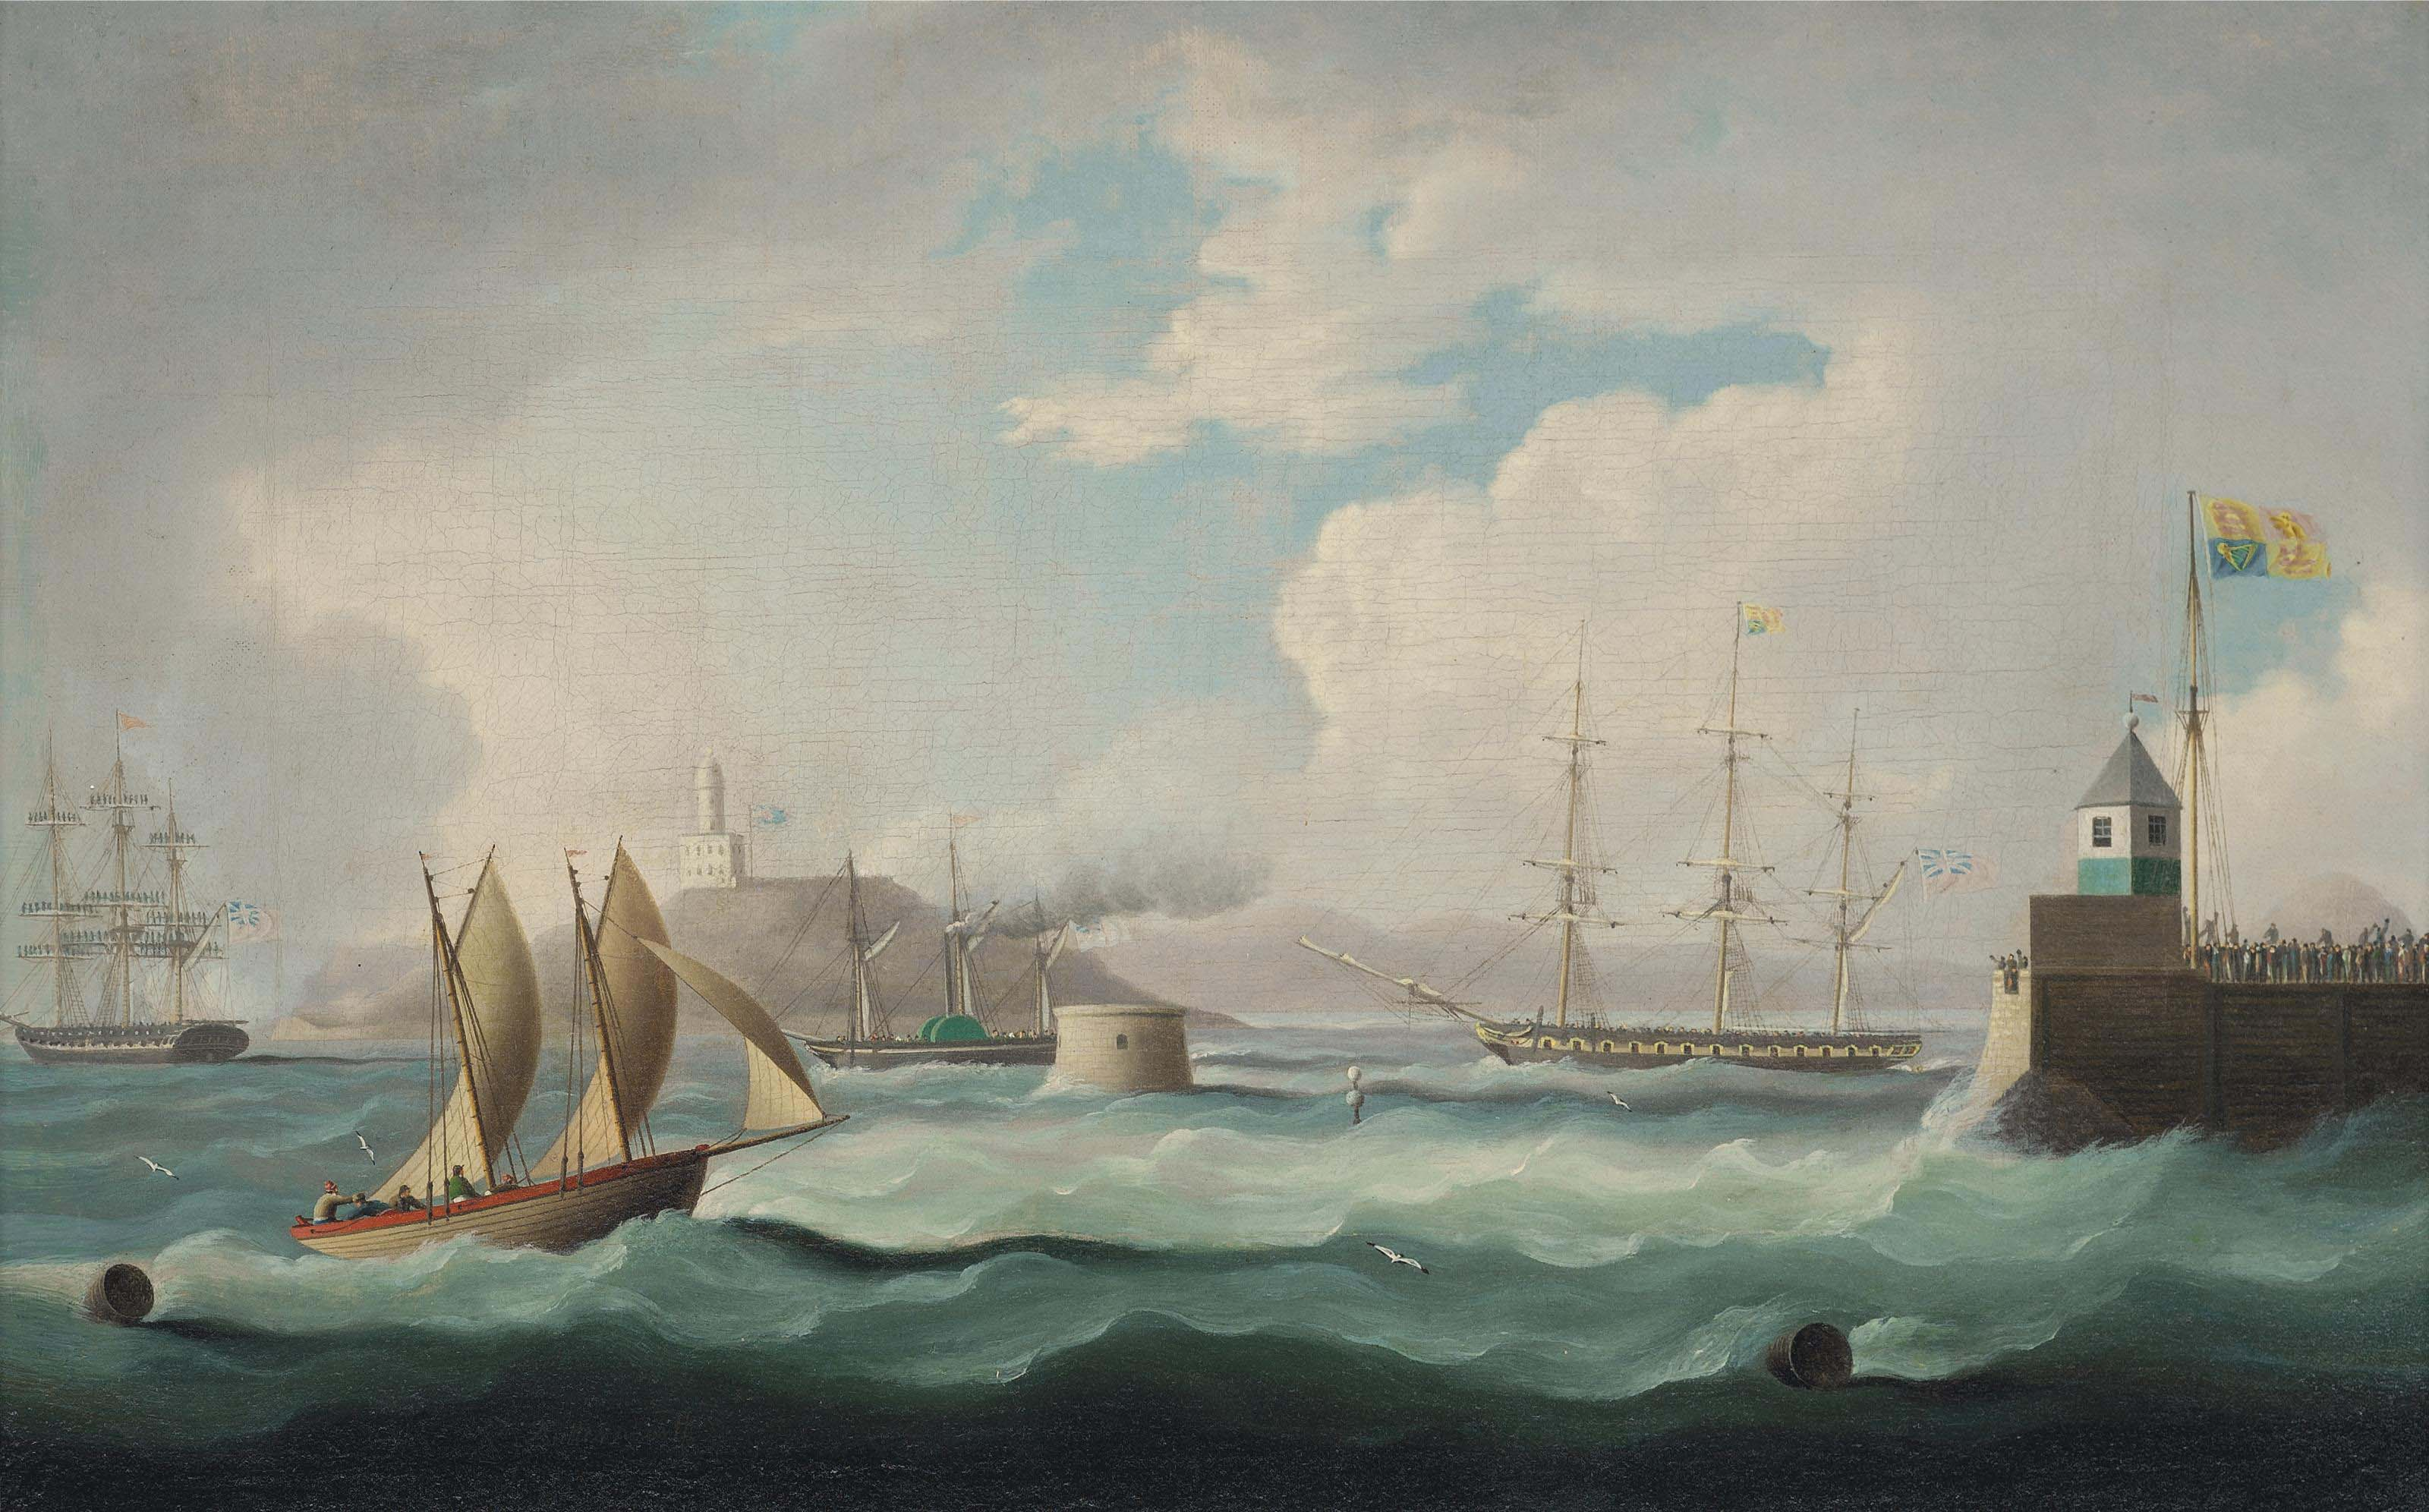 The arrival of H.M. King George IV in the Firth of Forth, on 14th August 1822, aboard H.M.Y. Royal George, accompanied by the Royal flotilla, for the first visit of a reigning Monarch to Scotland since 1650